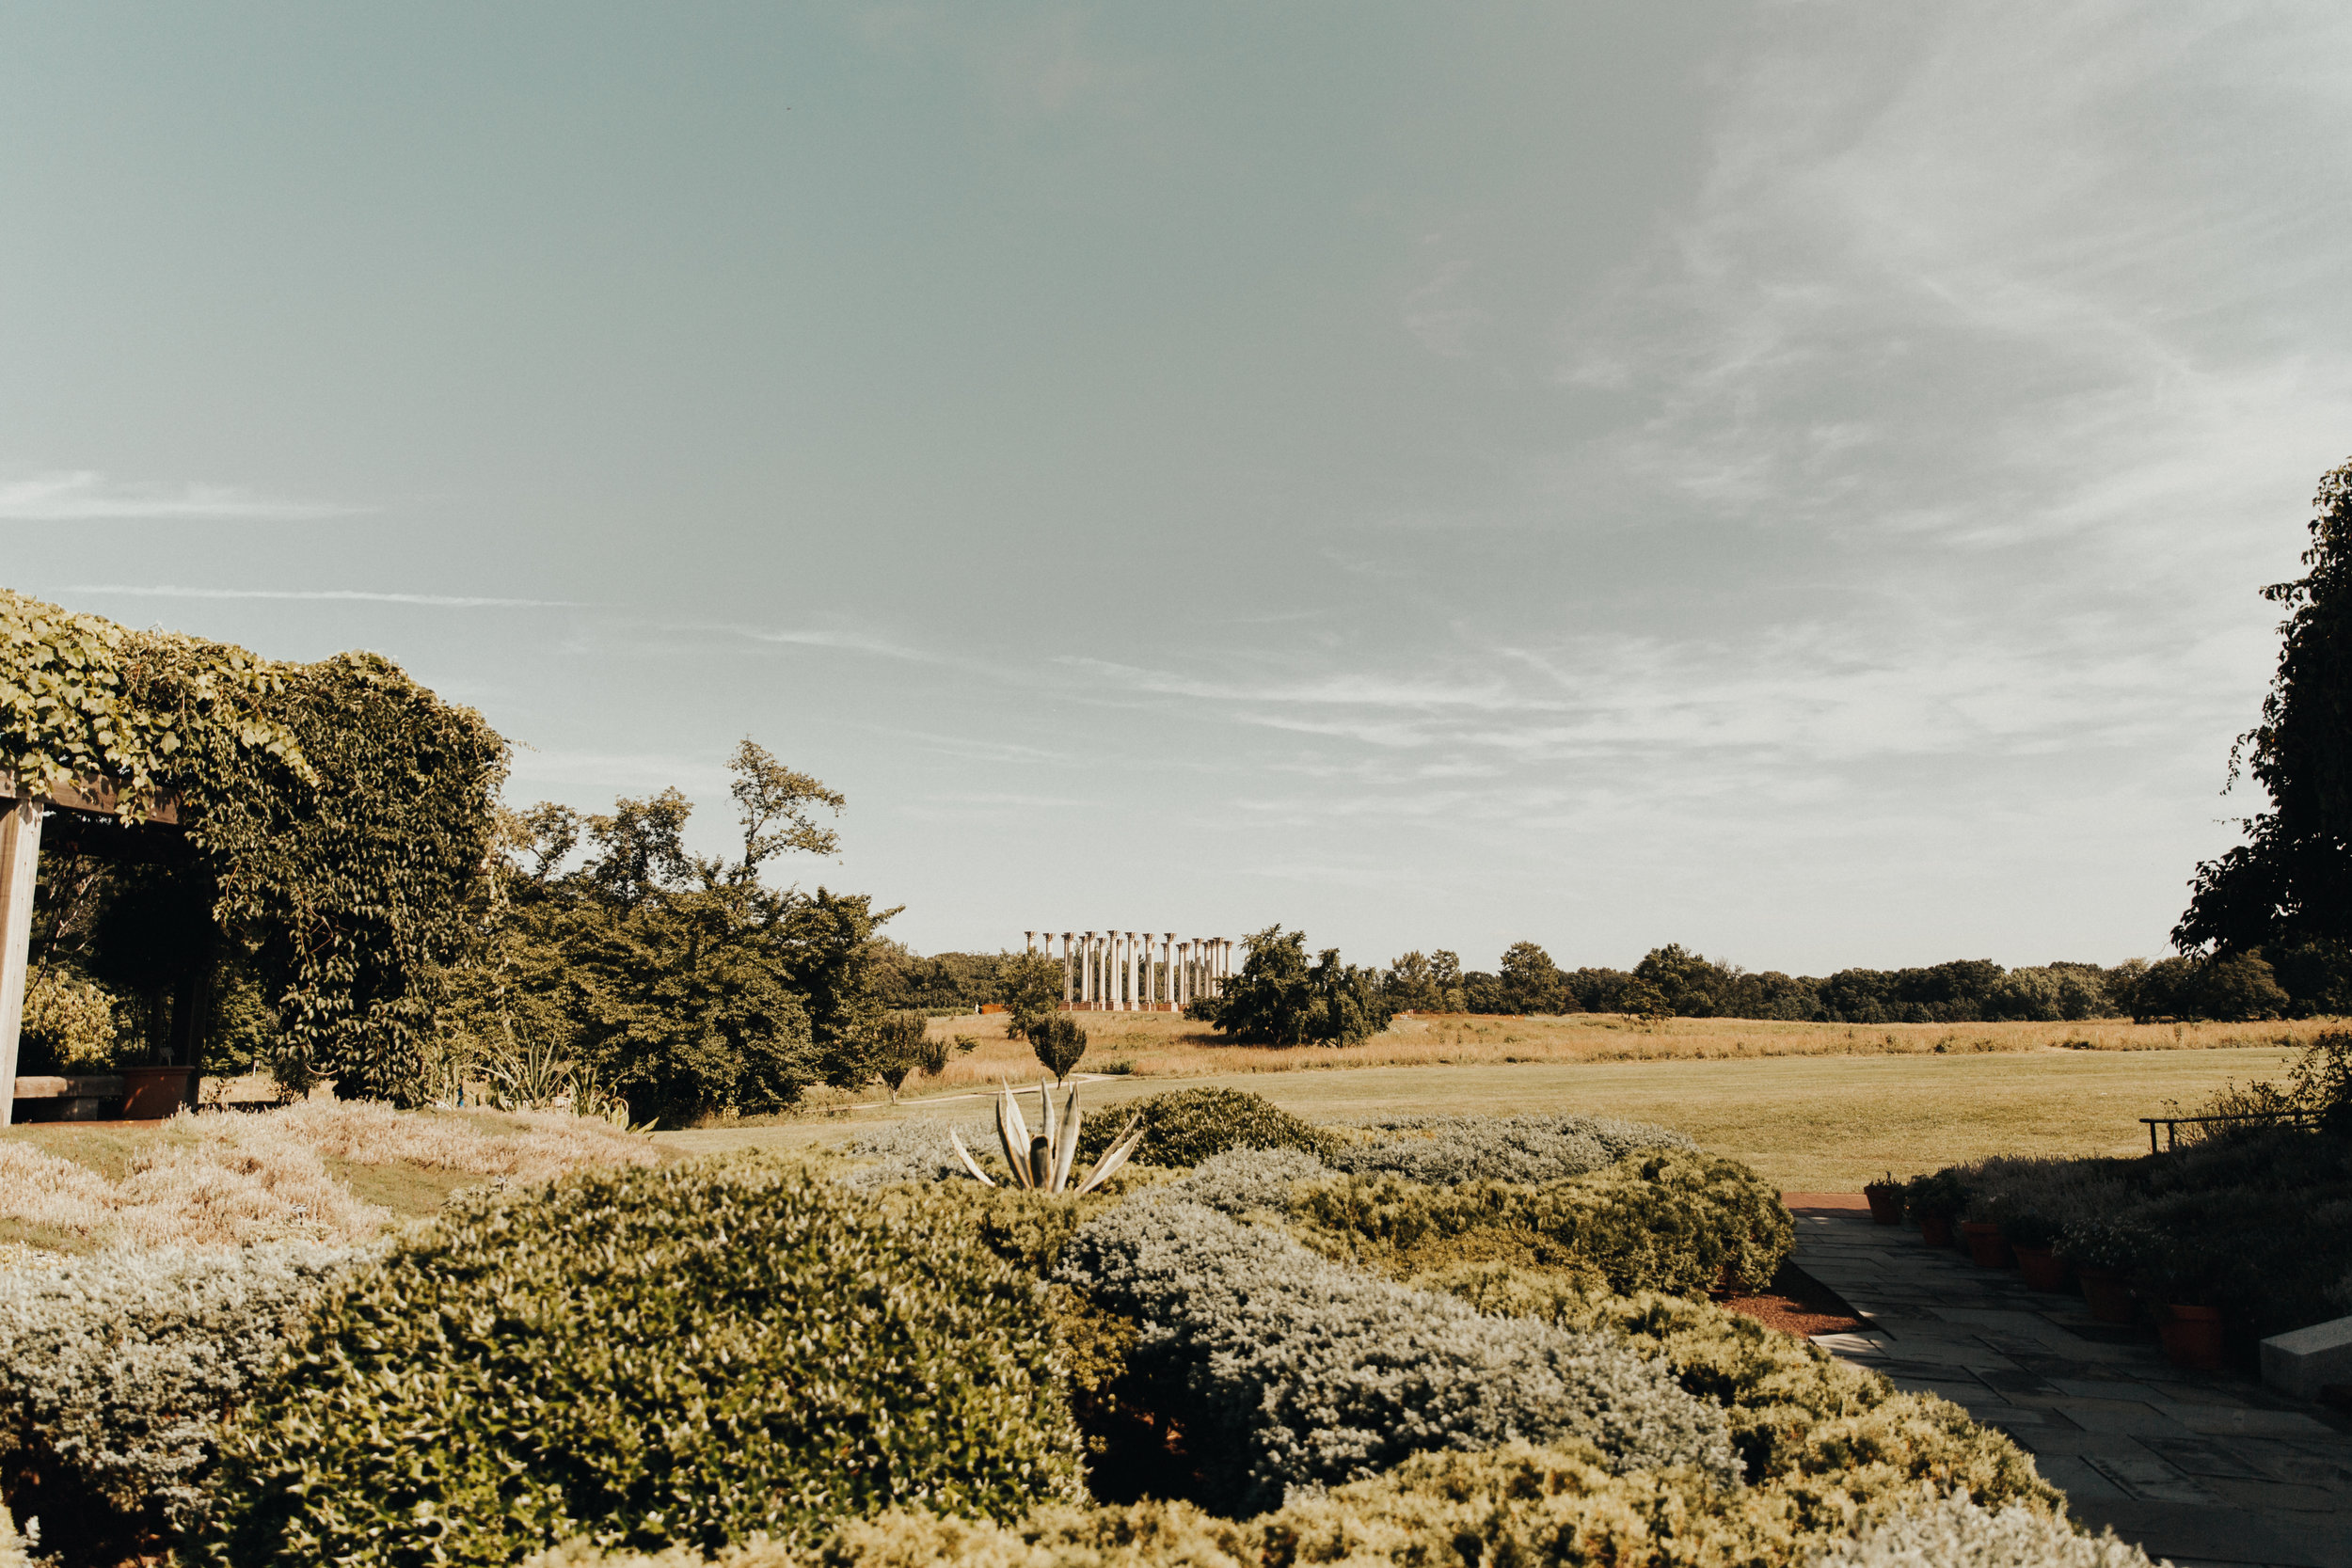 the US National Arboretum